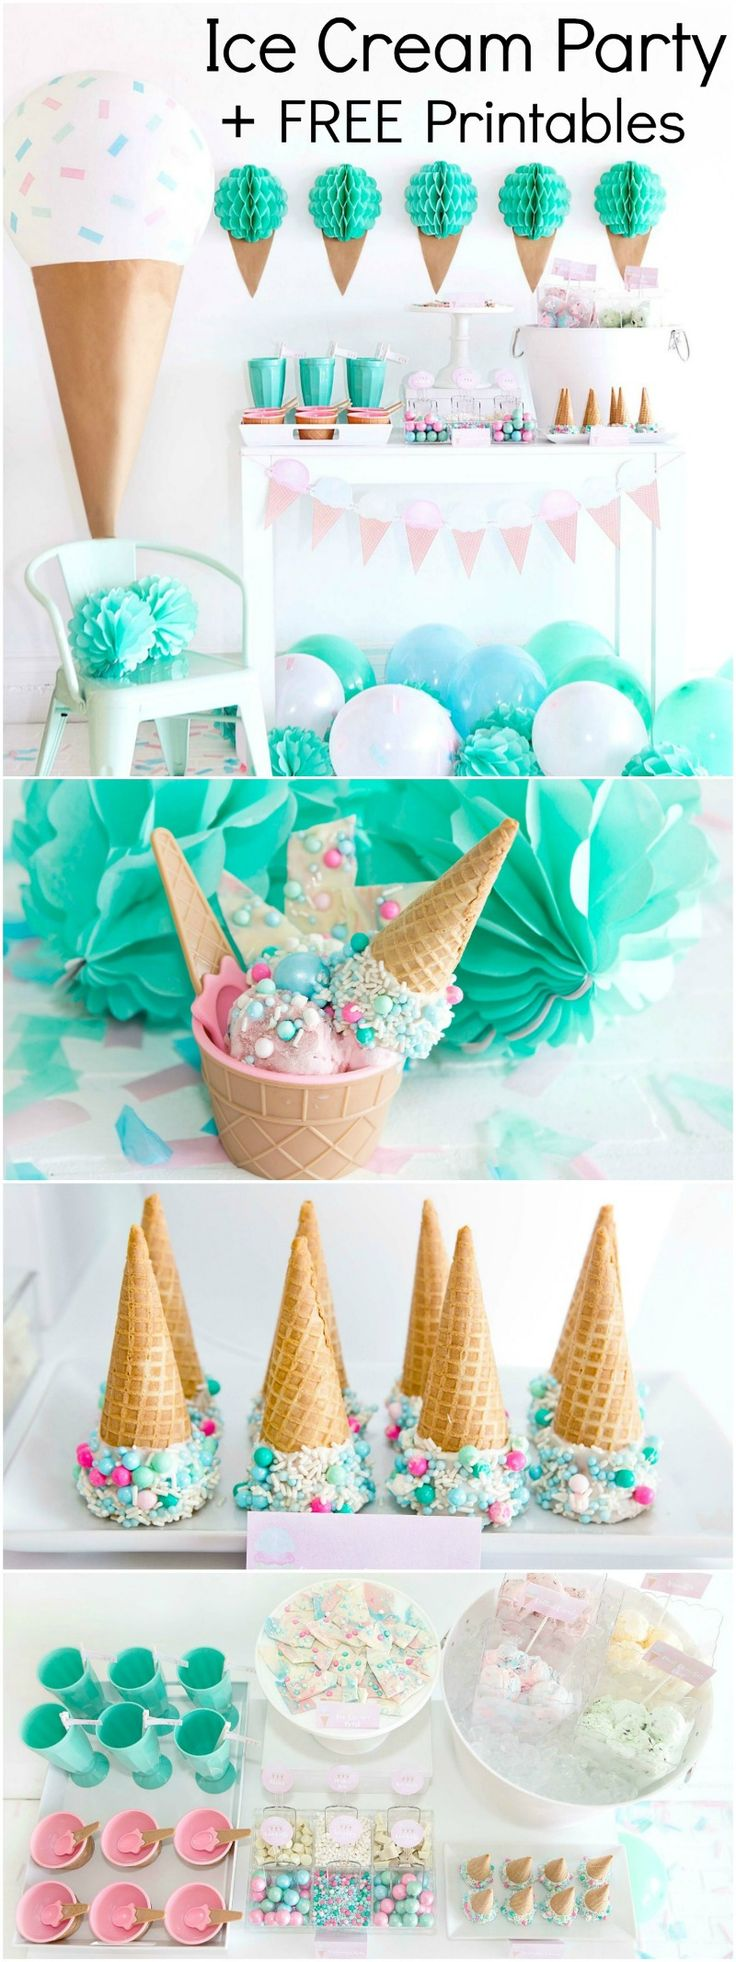 Ice Cream Party - Mint, Pink, and Aqua Party - Birthday Party + Printables